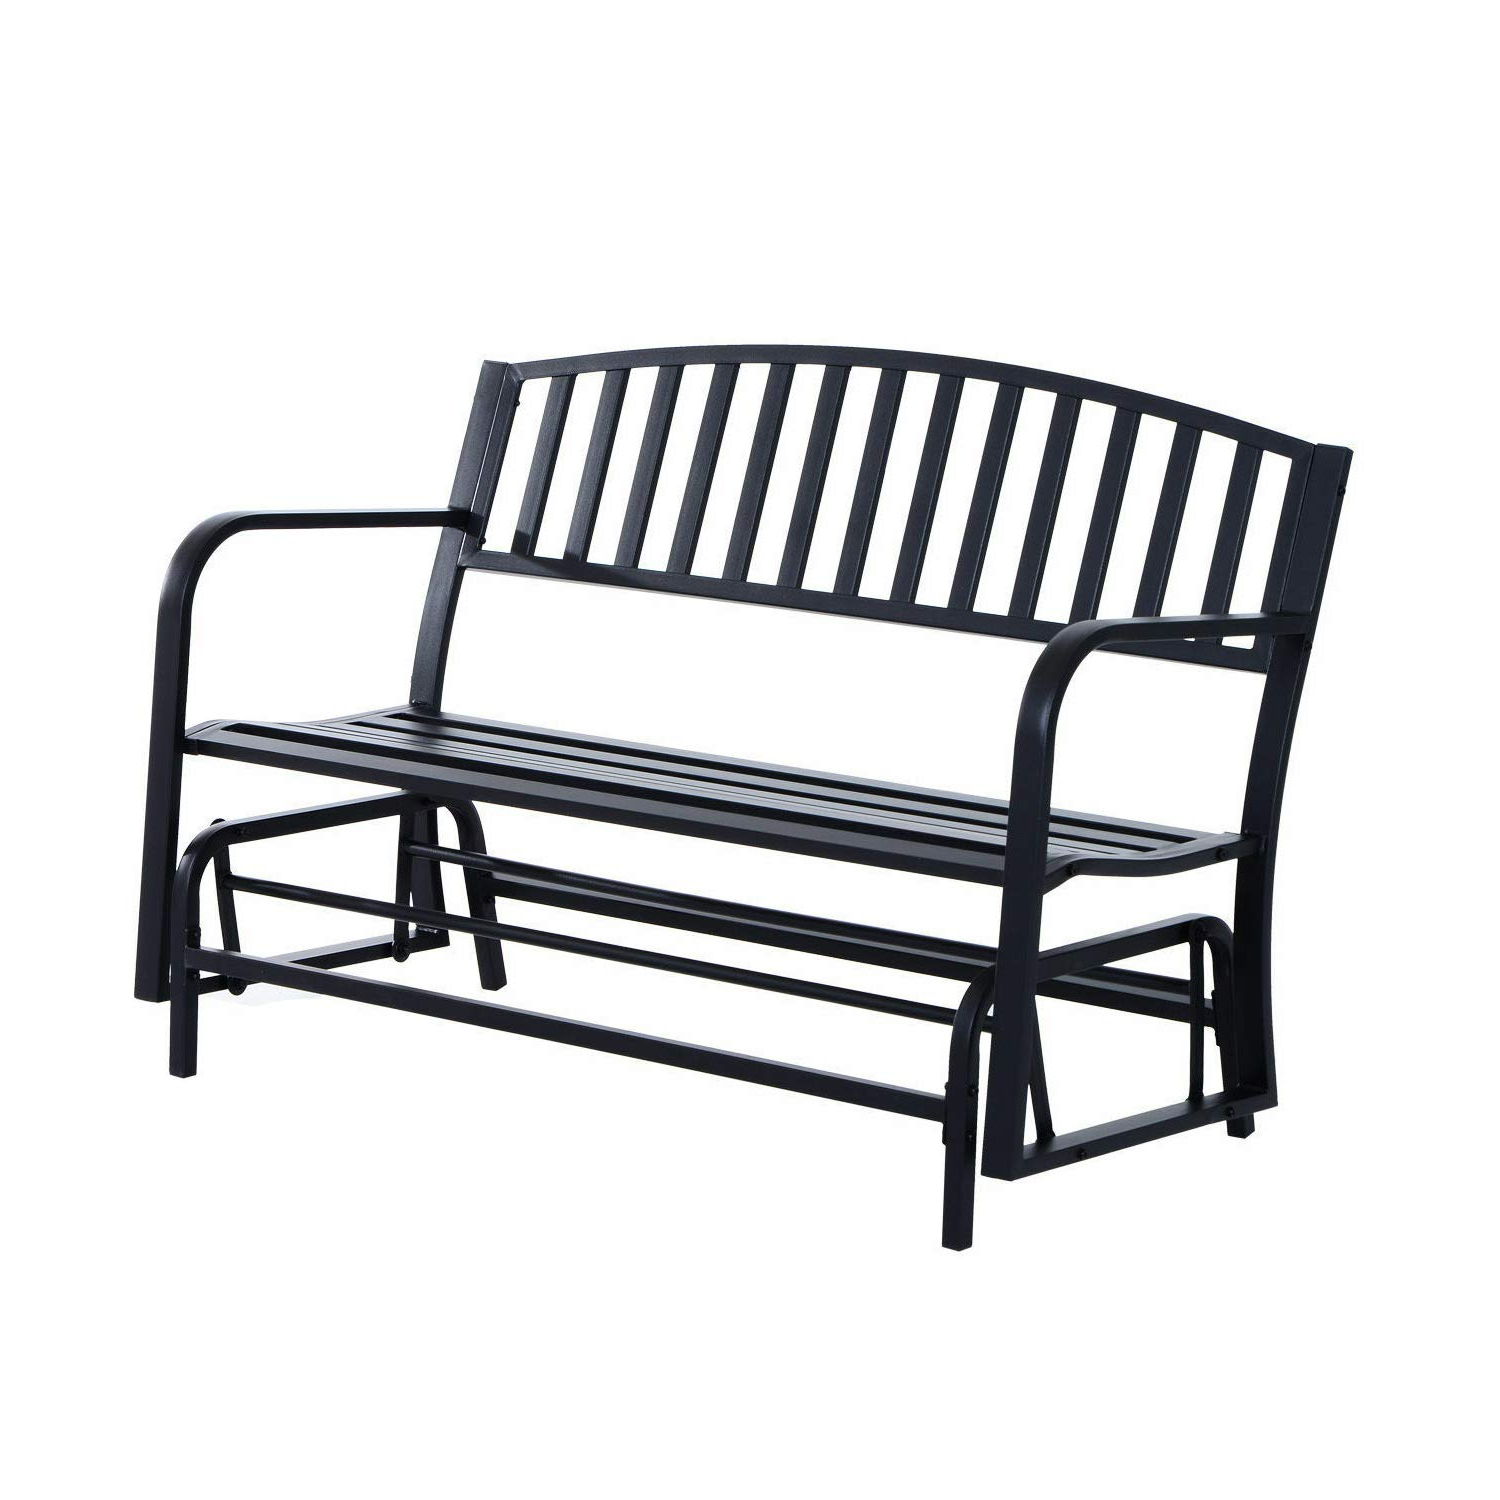 Best And Newest Outdoor Steel Patio Swing Glider Benches For Amazon : Black Patio Swing Glider Bench For 2 Persons (Gallery 6 of 30)